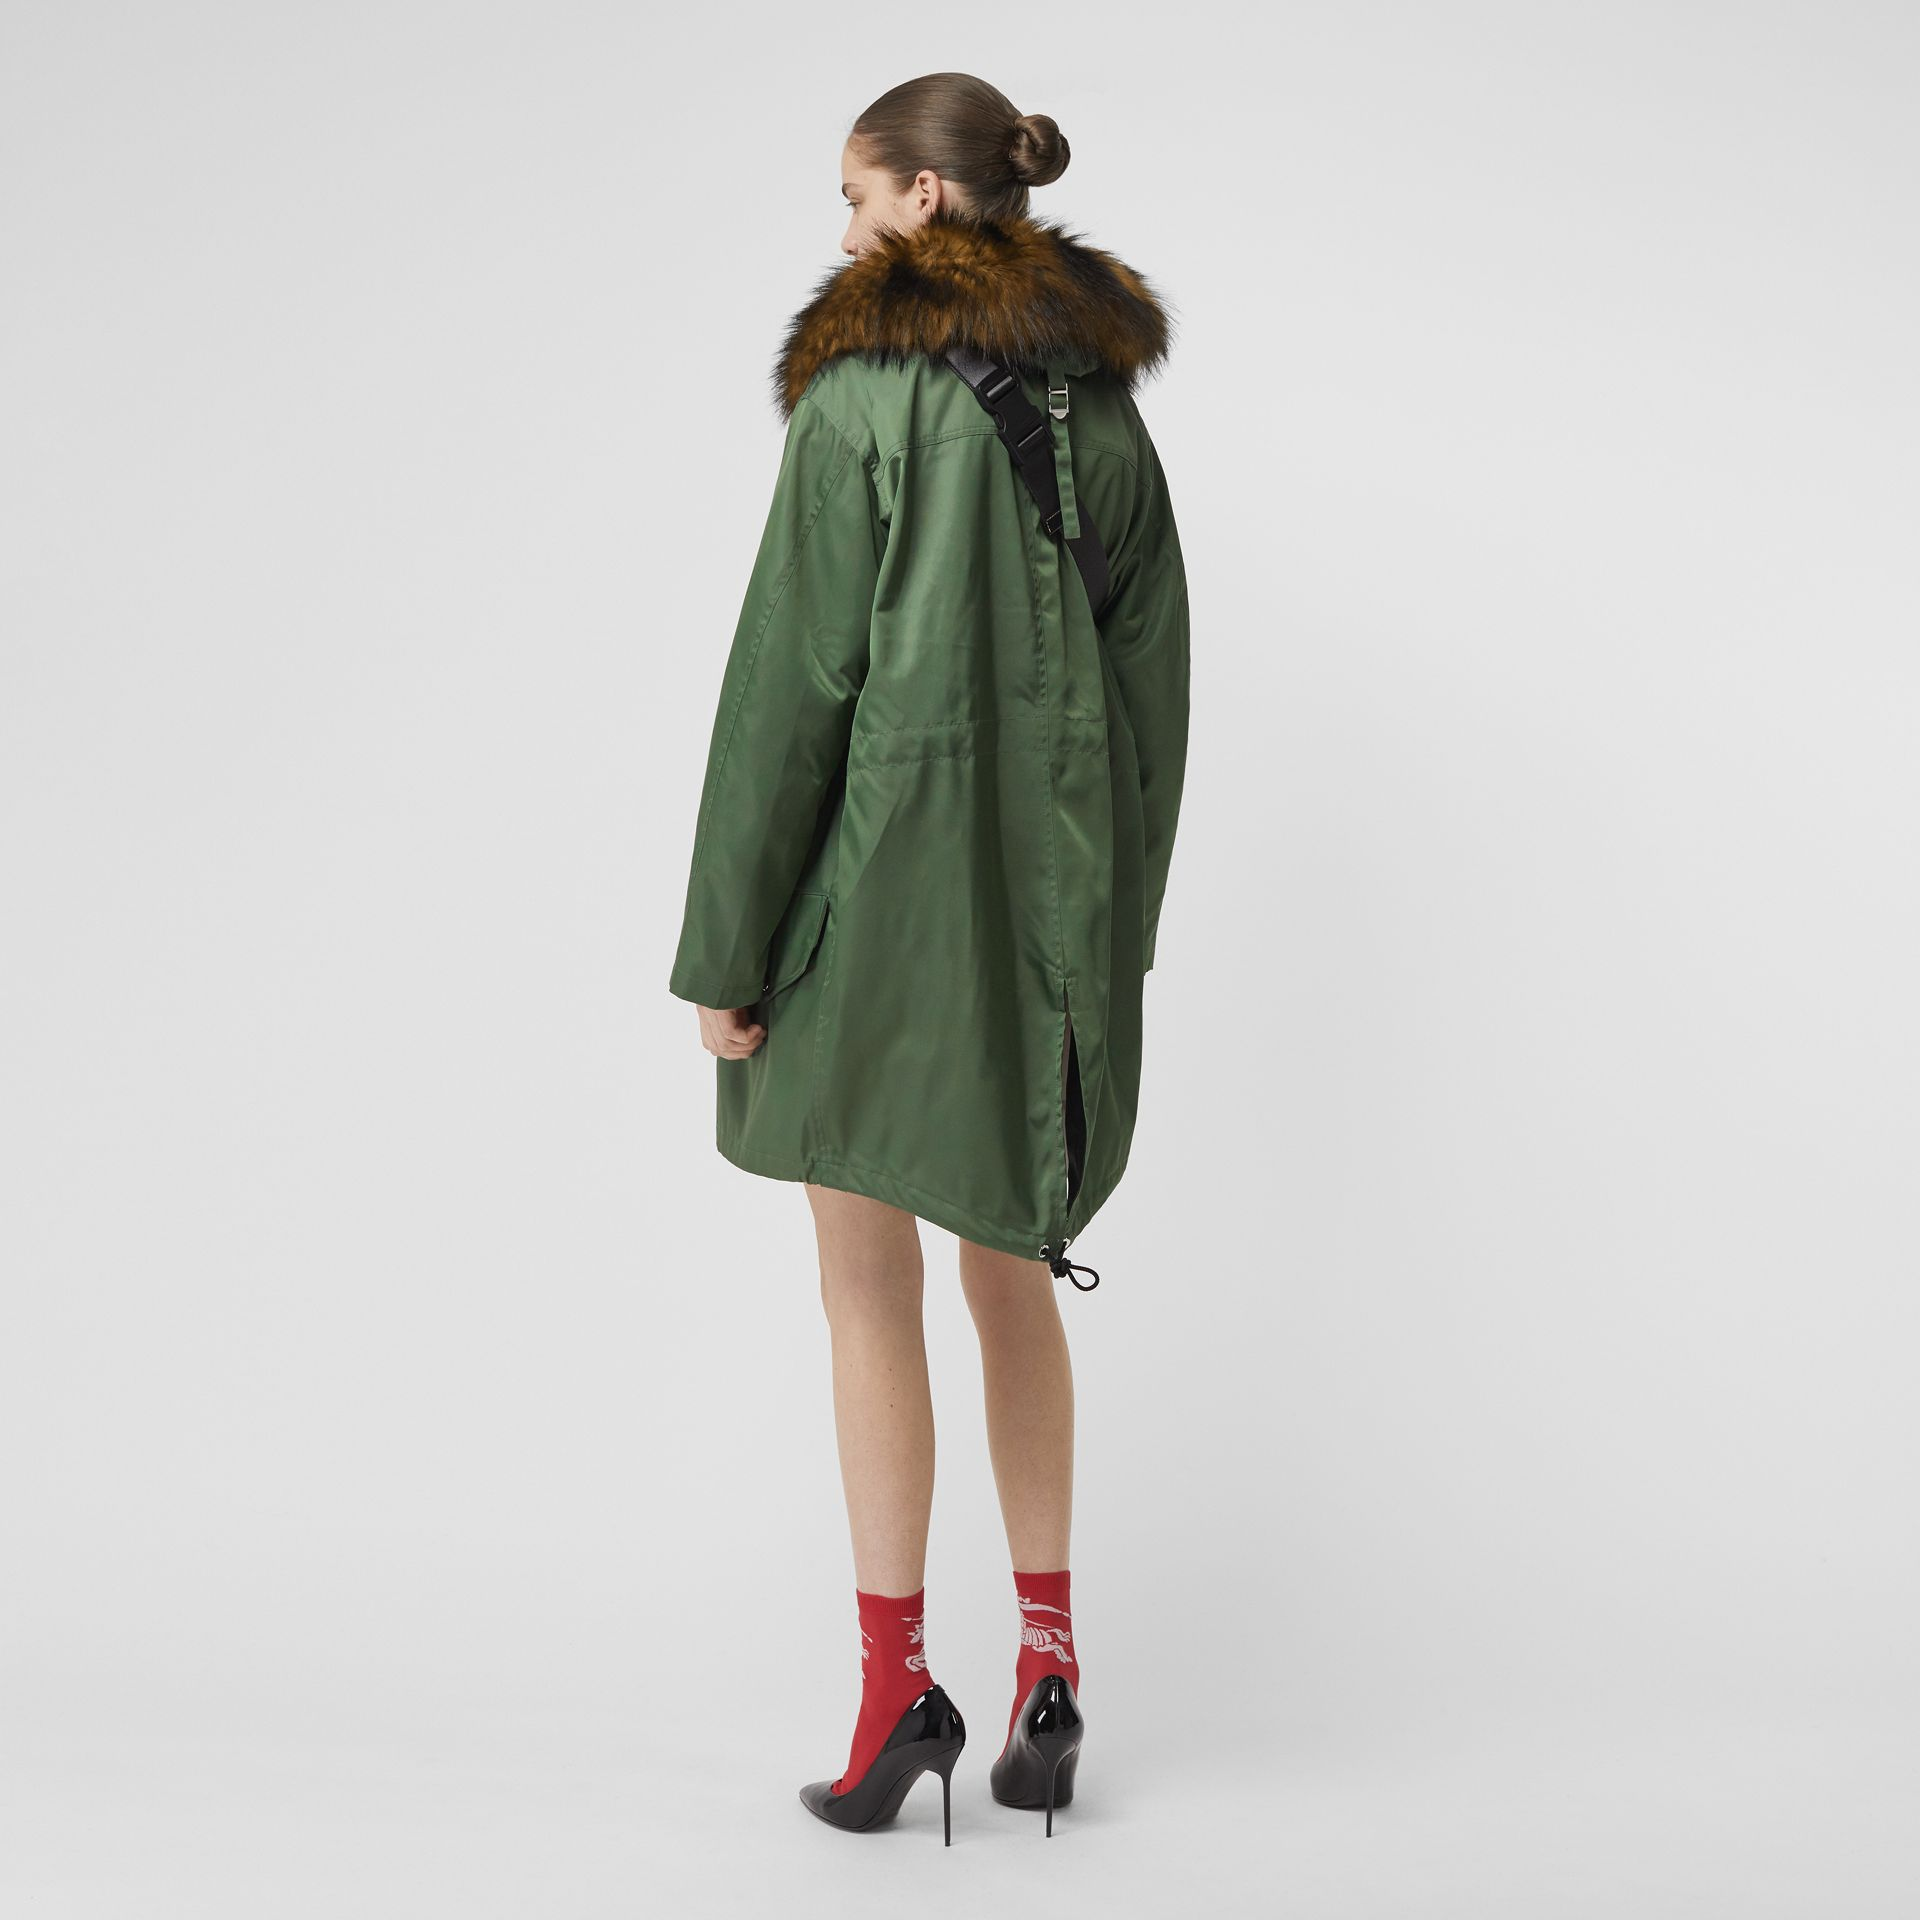 Faux Fur Trim Parka with Detachable Warmer in Grass Green - Women | Burberry United States - gallery image 1